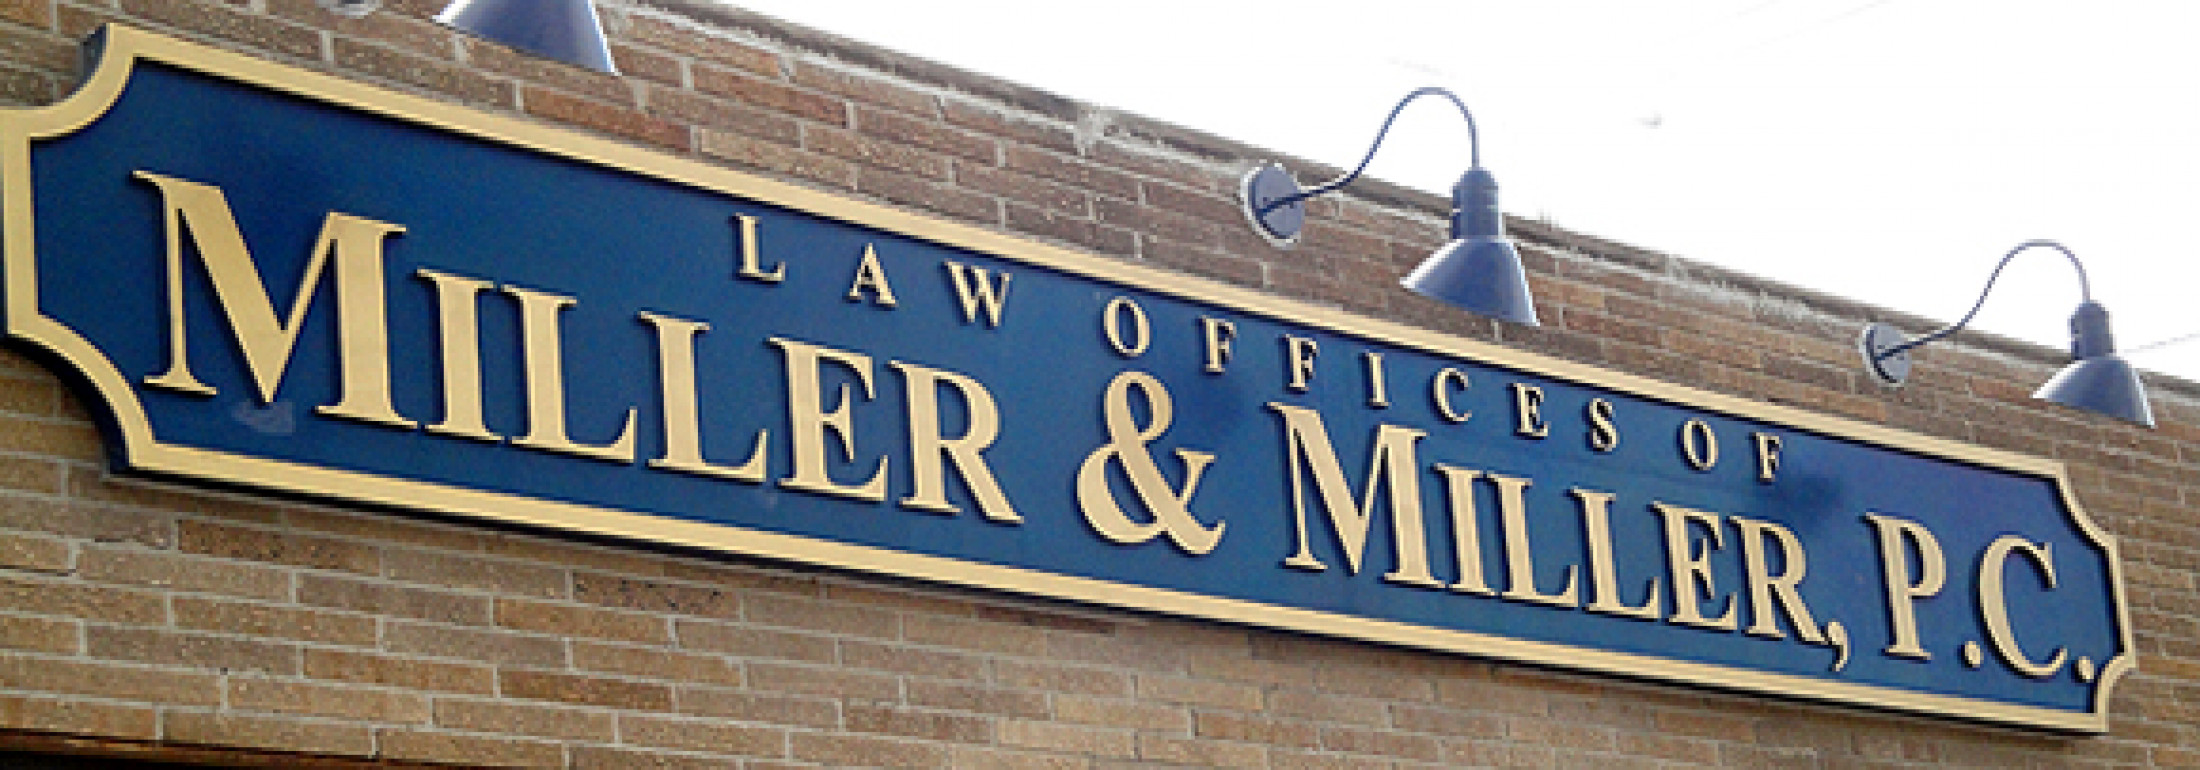 Law Offices of Miller & Miller, P.C. sign